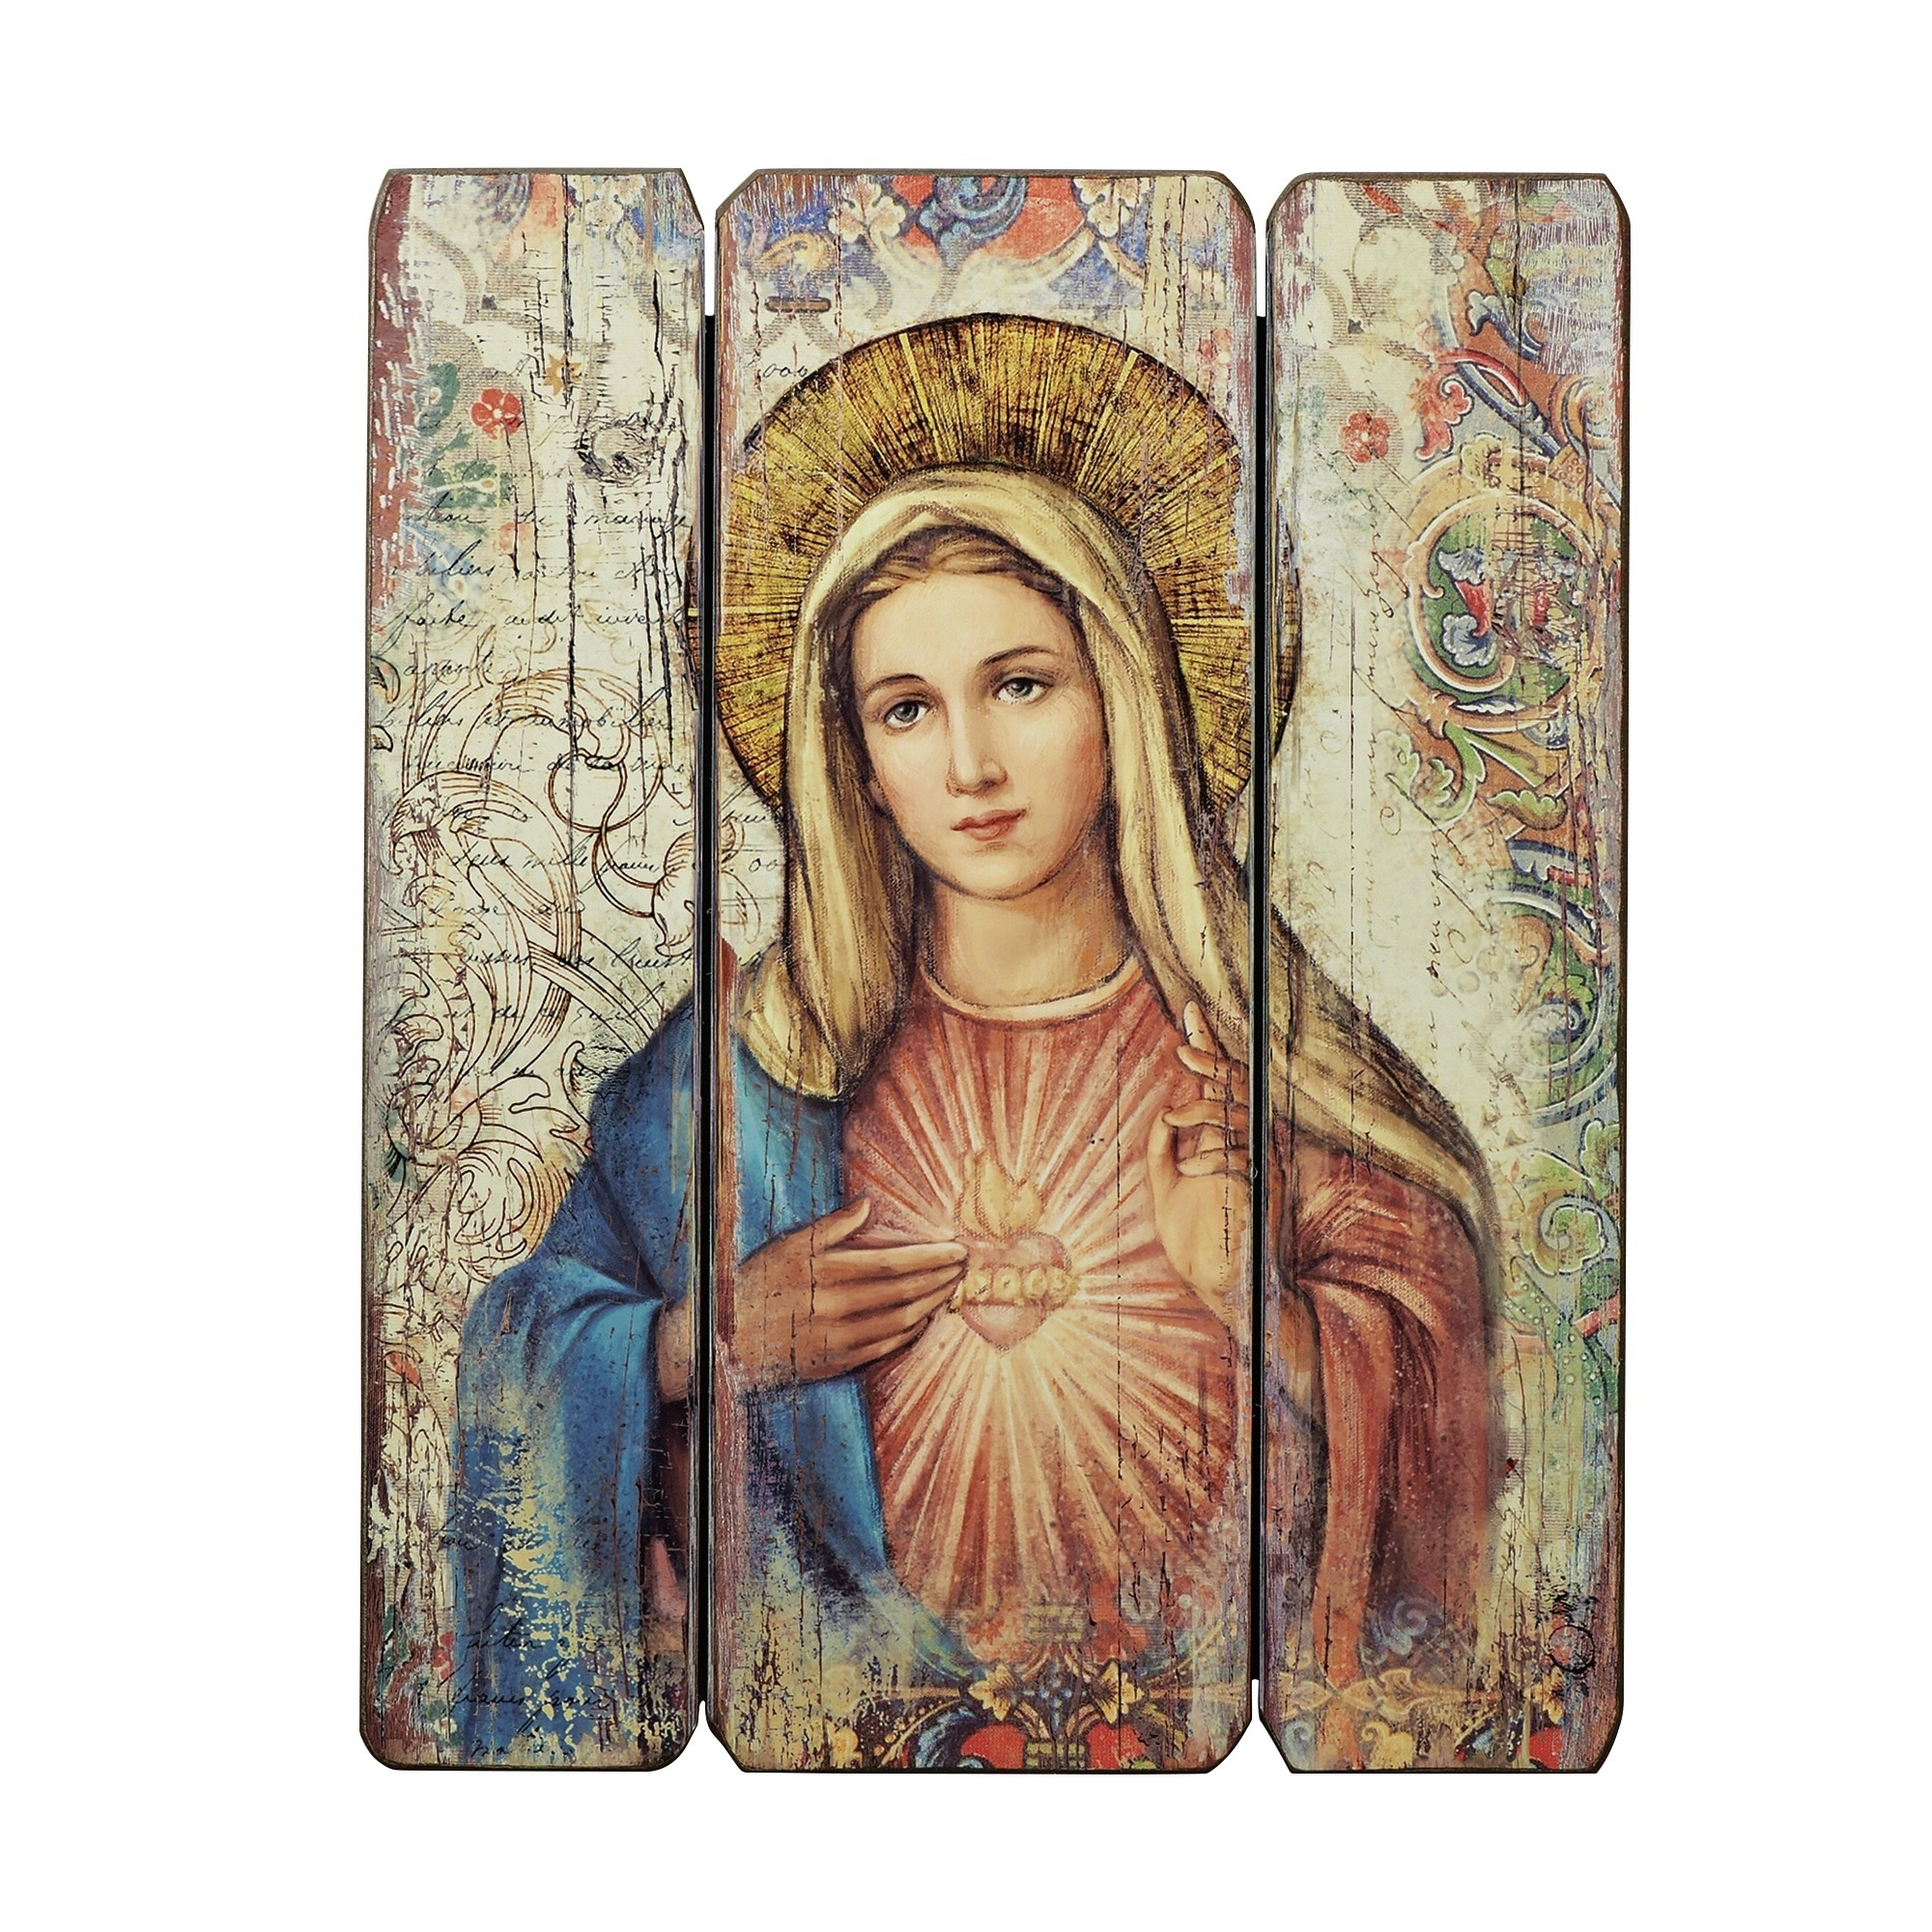 Virgin Mary Art: Our Lady Art Prints & More | The Catholic Company With Best And Newest Framed Asian Art Prints (View 14 of 15)